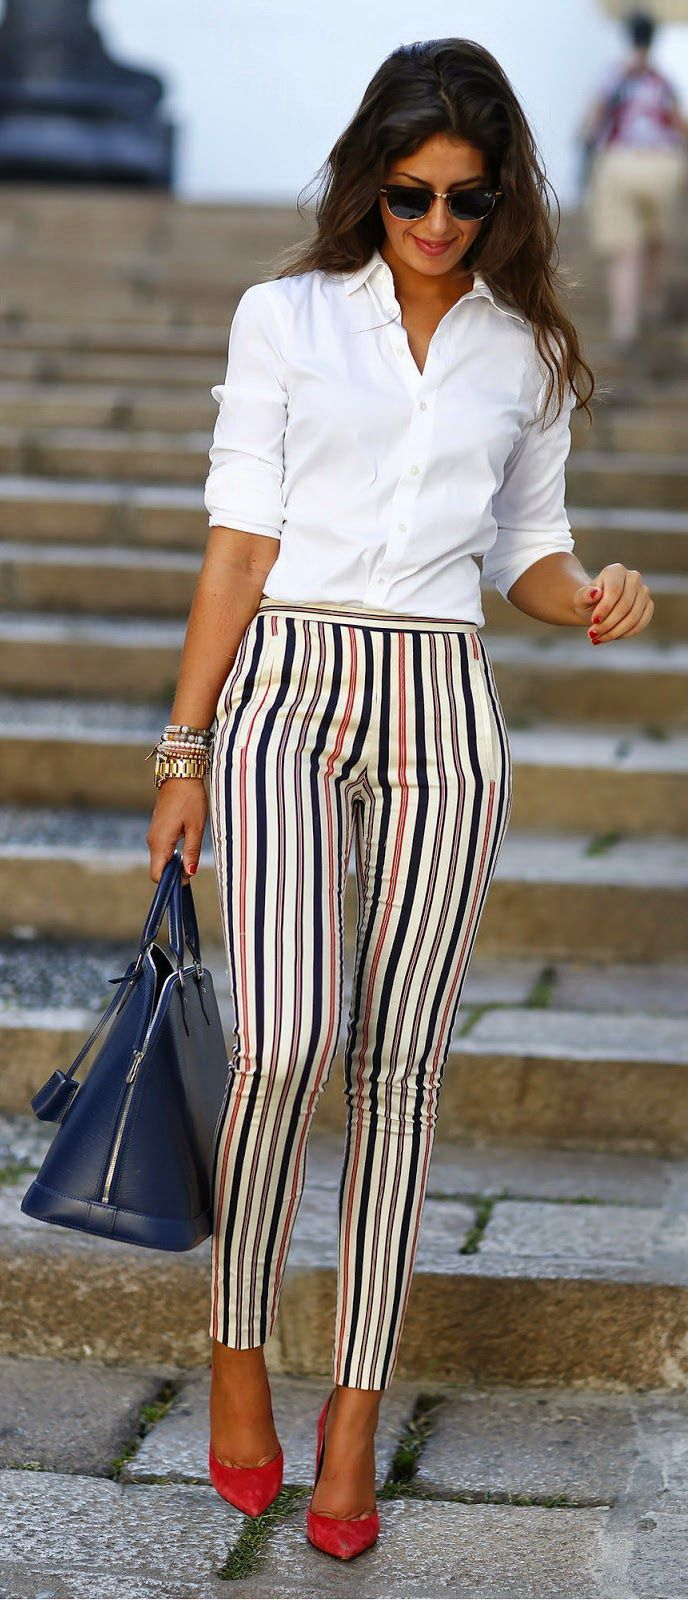 17 Best ideas about Summer Interview Outfits on Pinterest ...